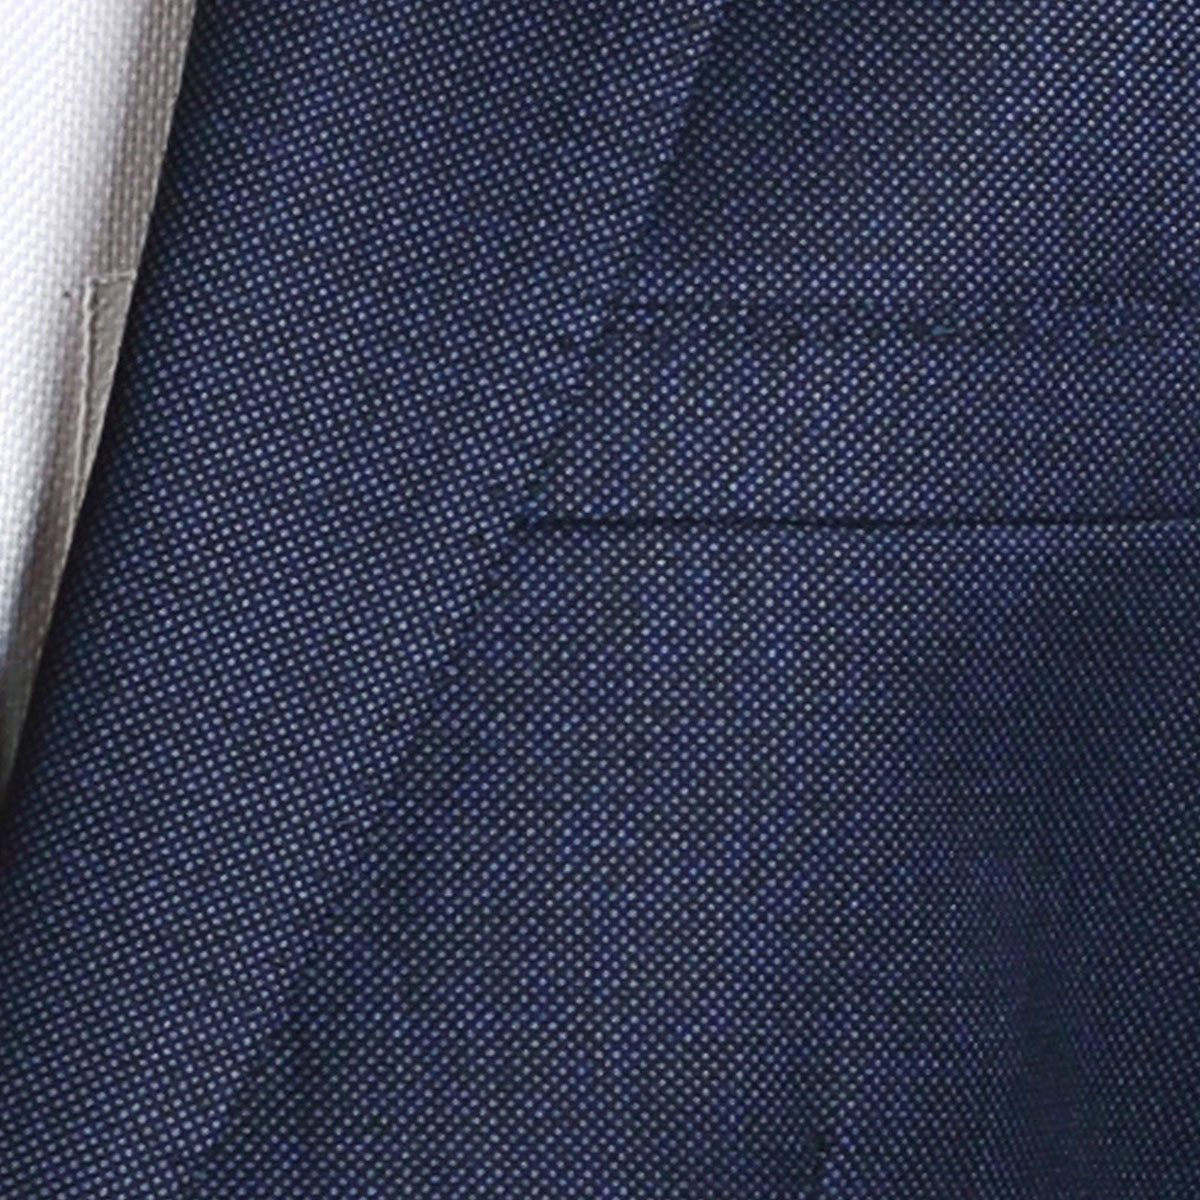 New Hopes Blue Suit - Best Bespoke Suits. Premium Custom Tailored ...